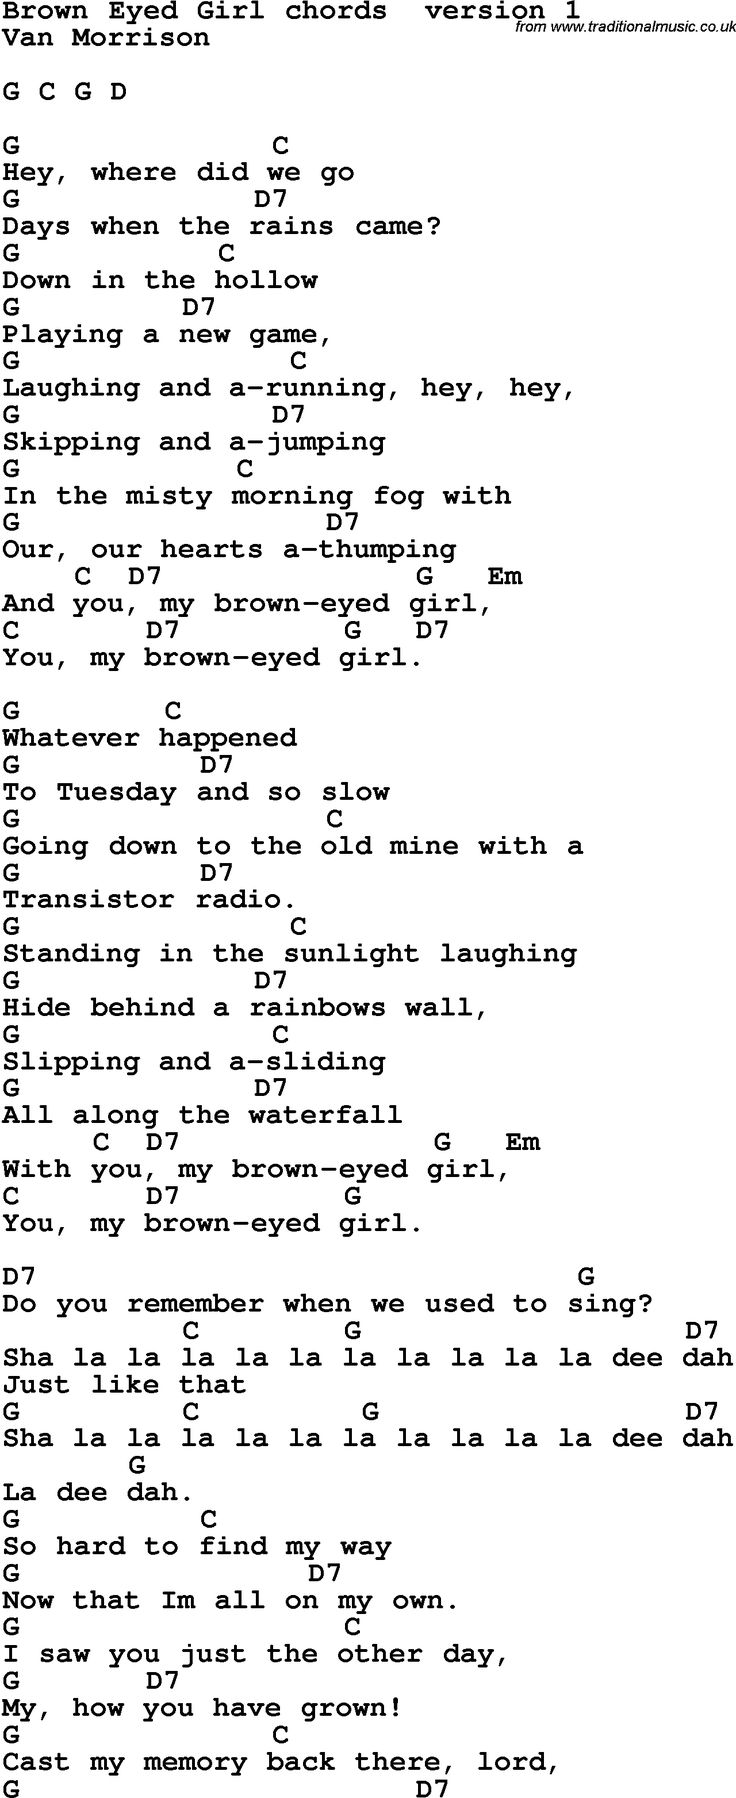 Song Lyrics with guitar chords for Brown Eyed Girl